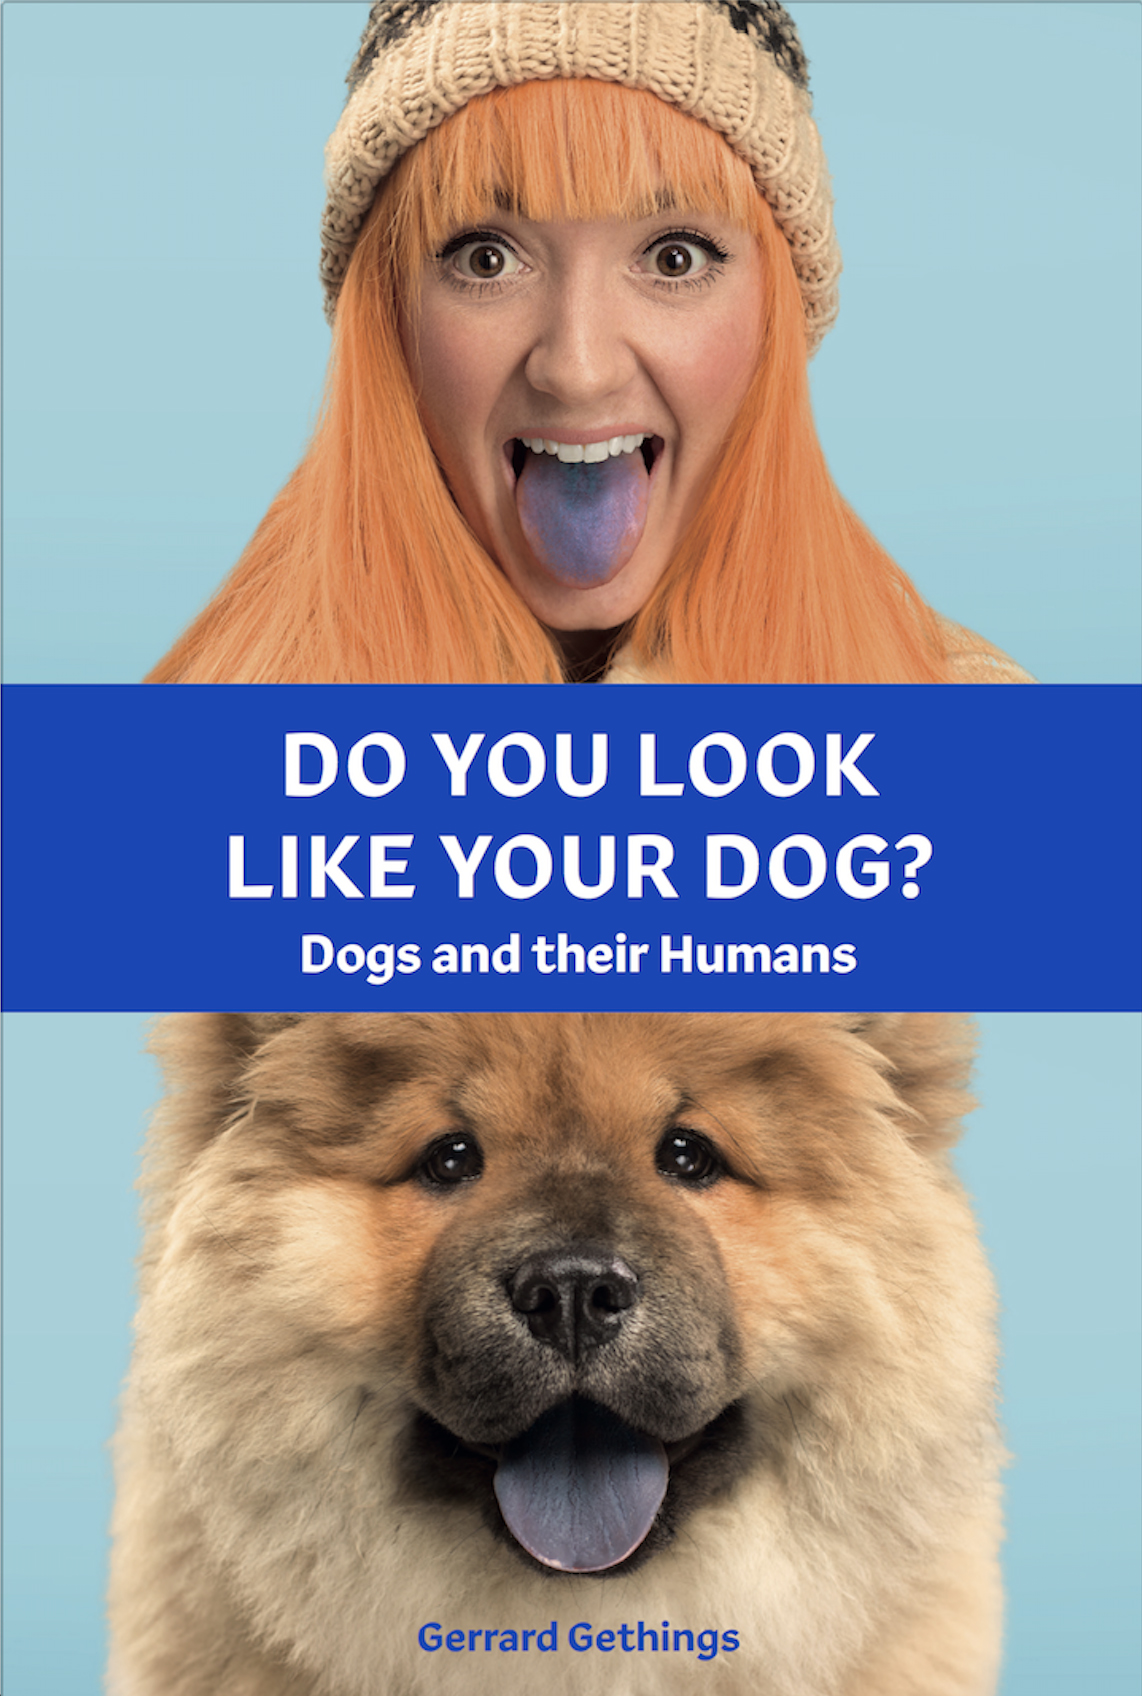 Do You Look Like Your Dog? The Book - Product Thumbnail